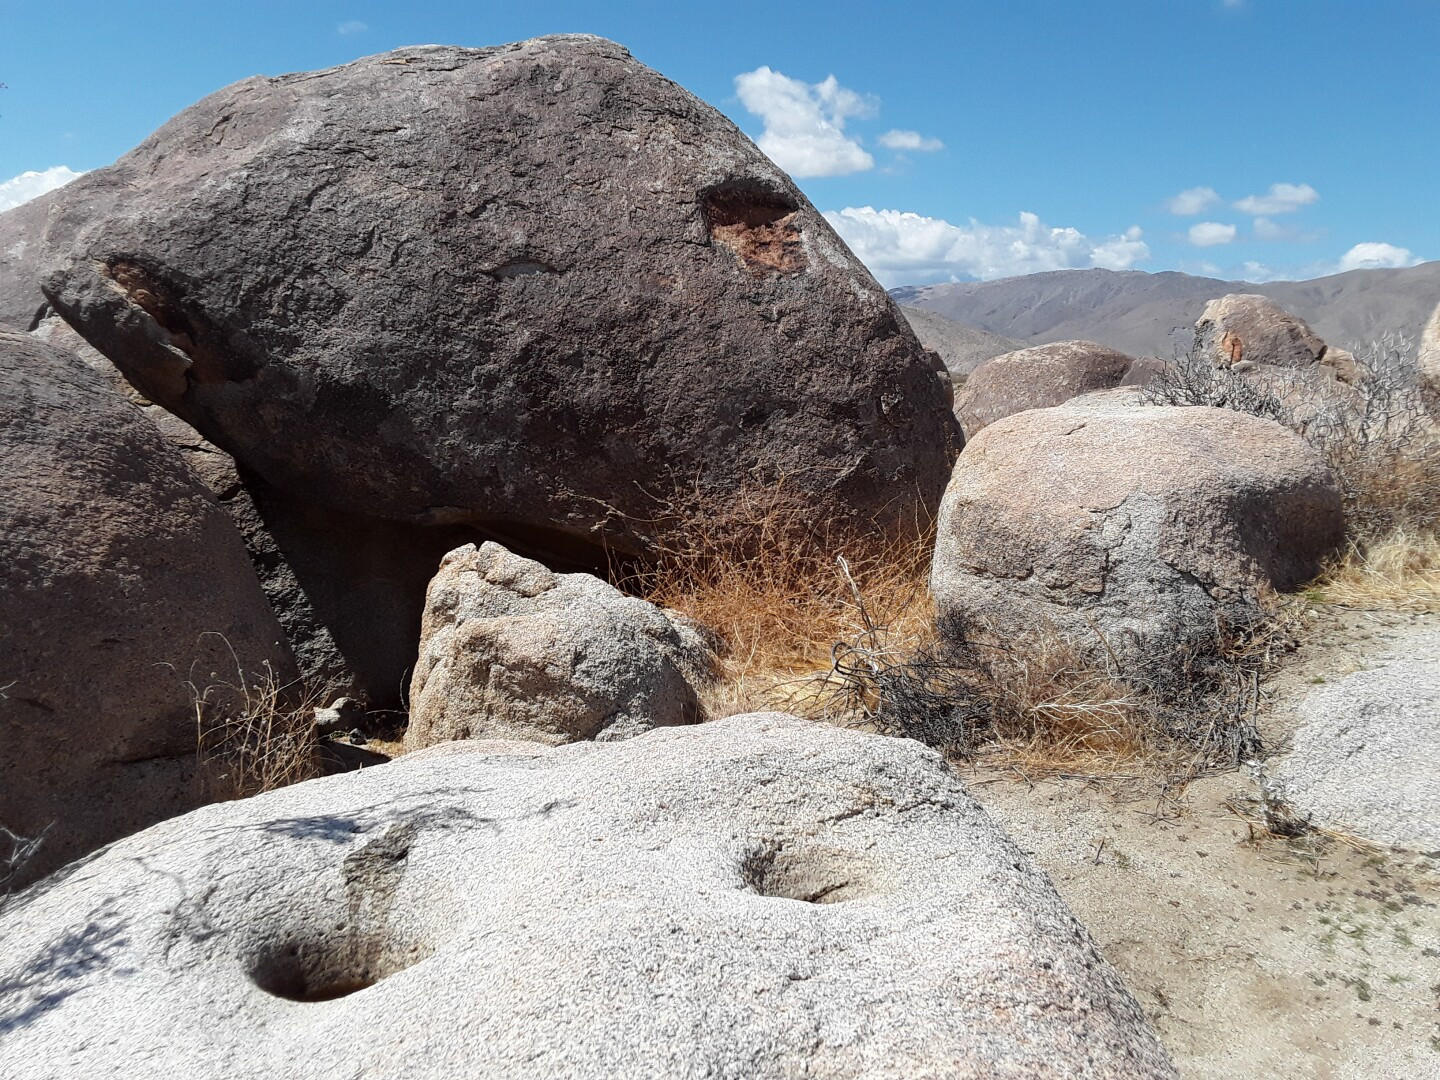 Kumeyaay Village Site at Anza-Borrego. Large boulders make up most of the landscape. At the bottom left of the photo there is a flat boulder with two medium-sized holes in it.